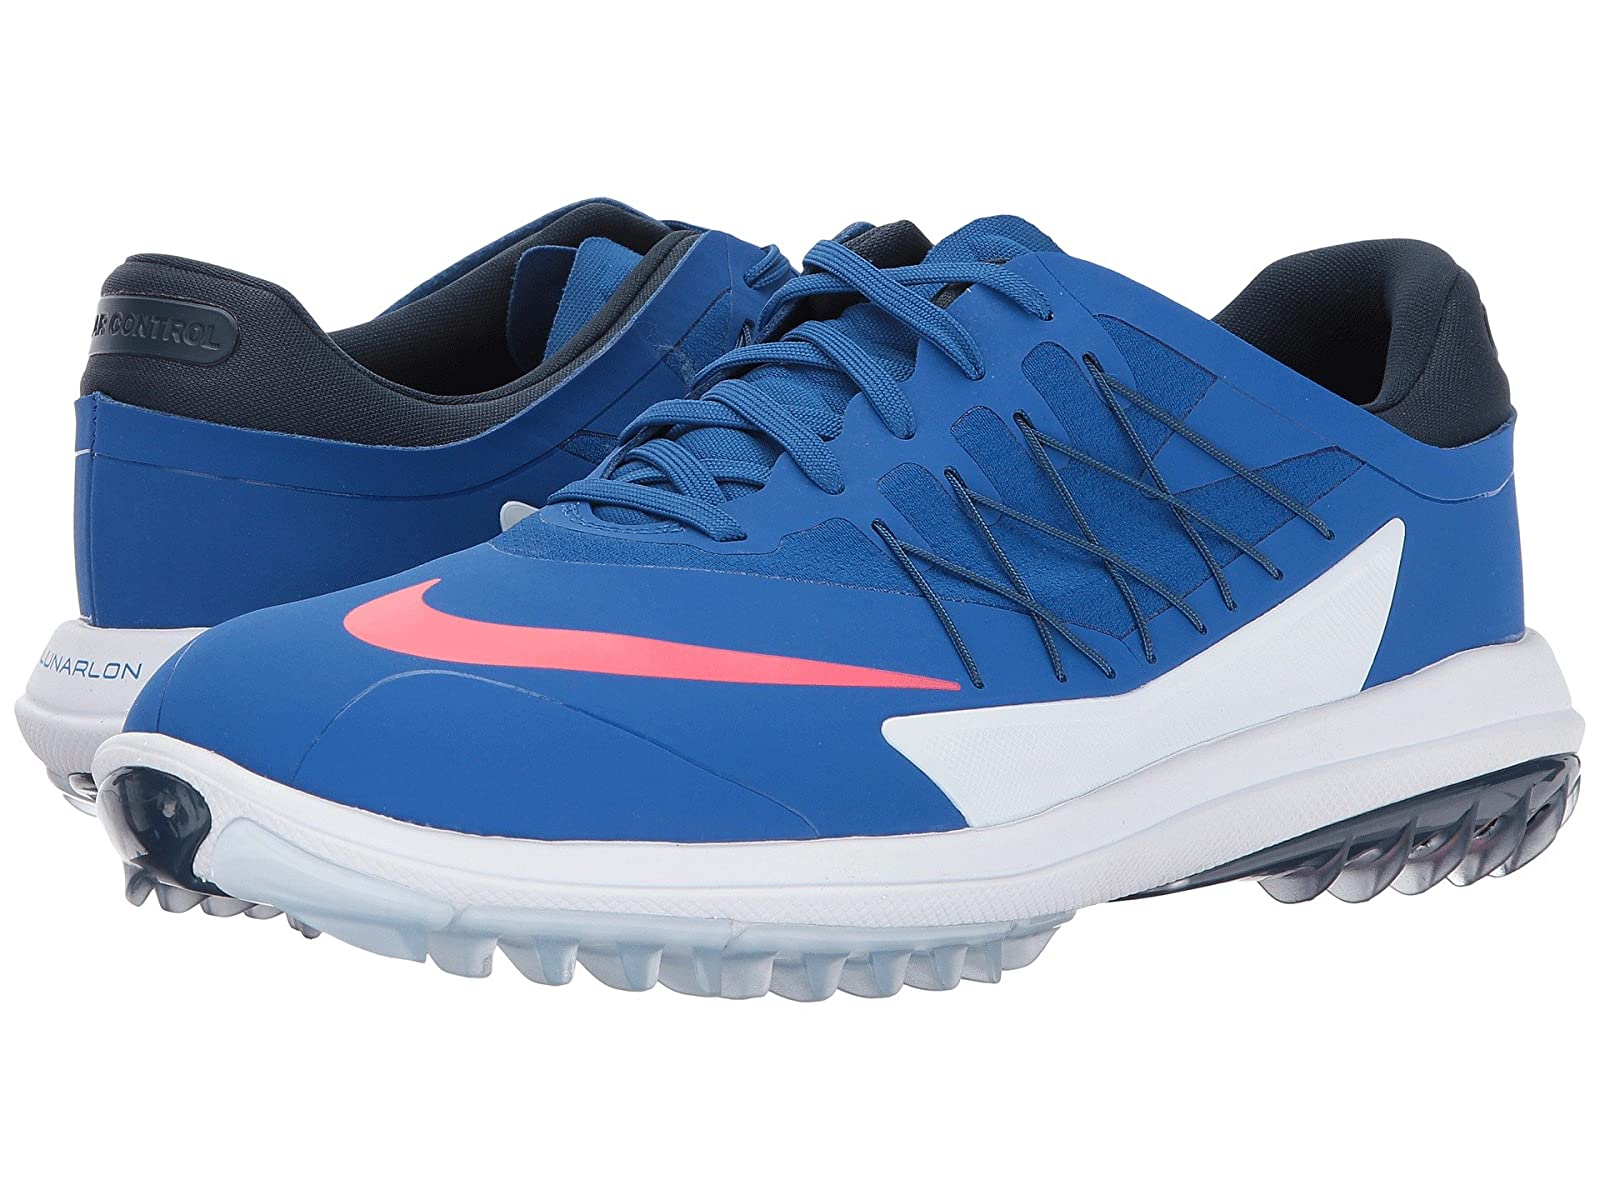 Nike Golf Lunar Control VaporCheap and distinctive eye-catching shoes